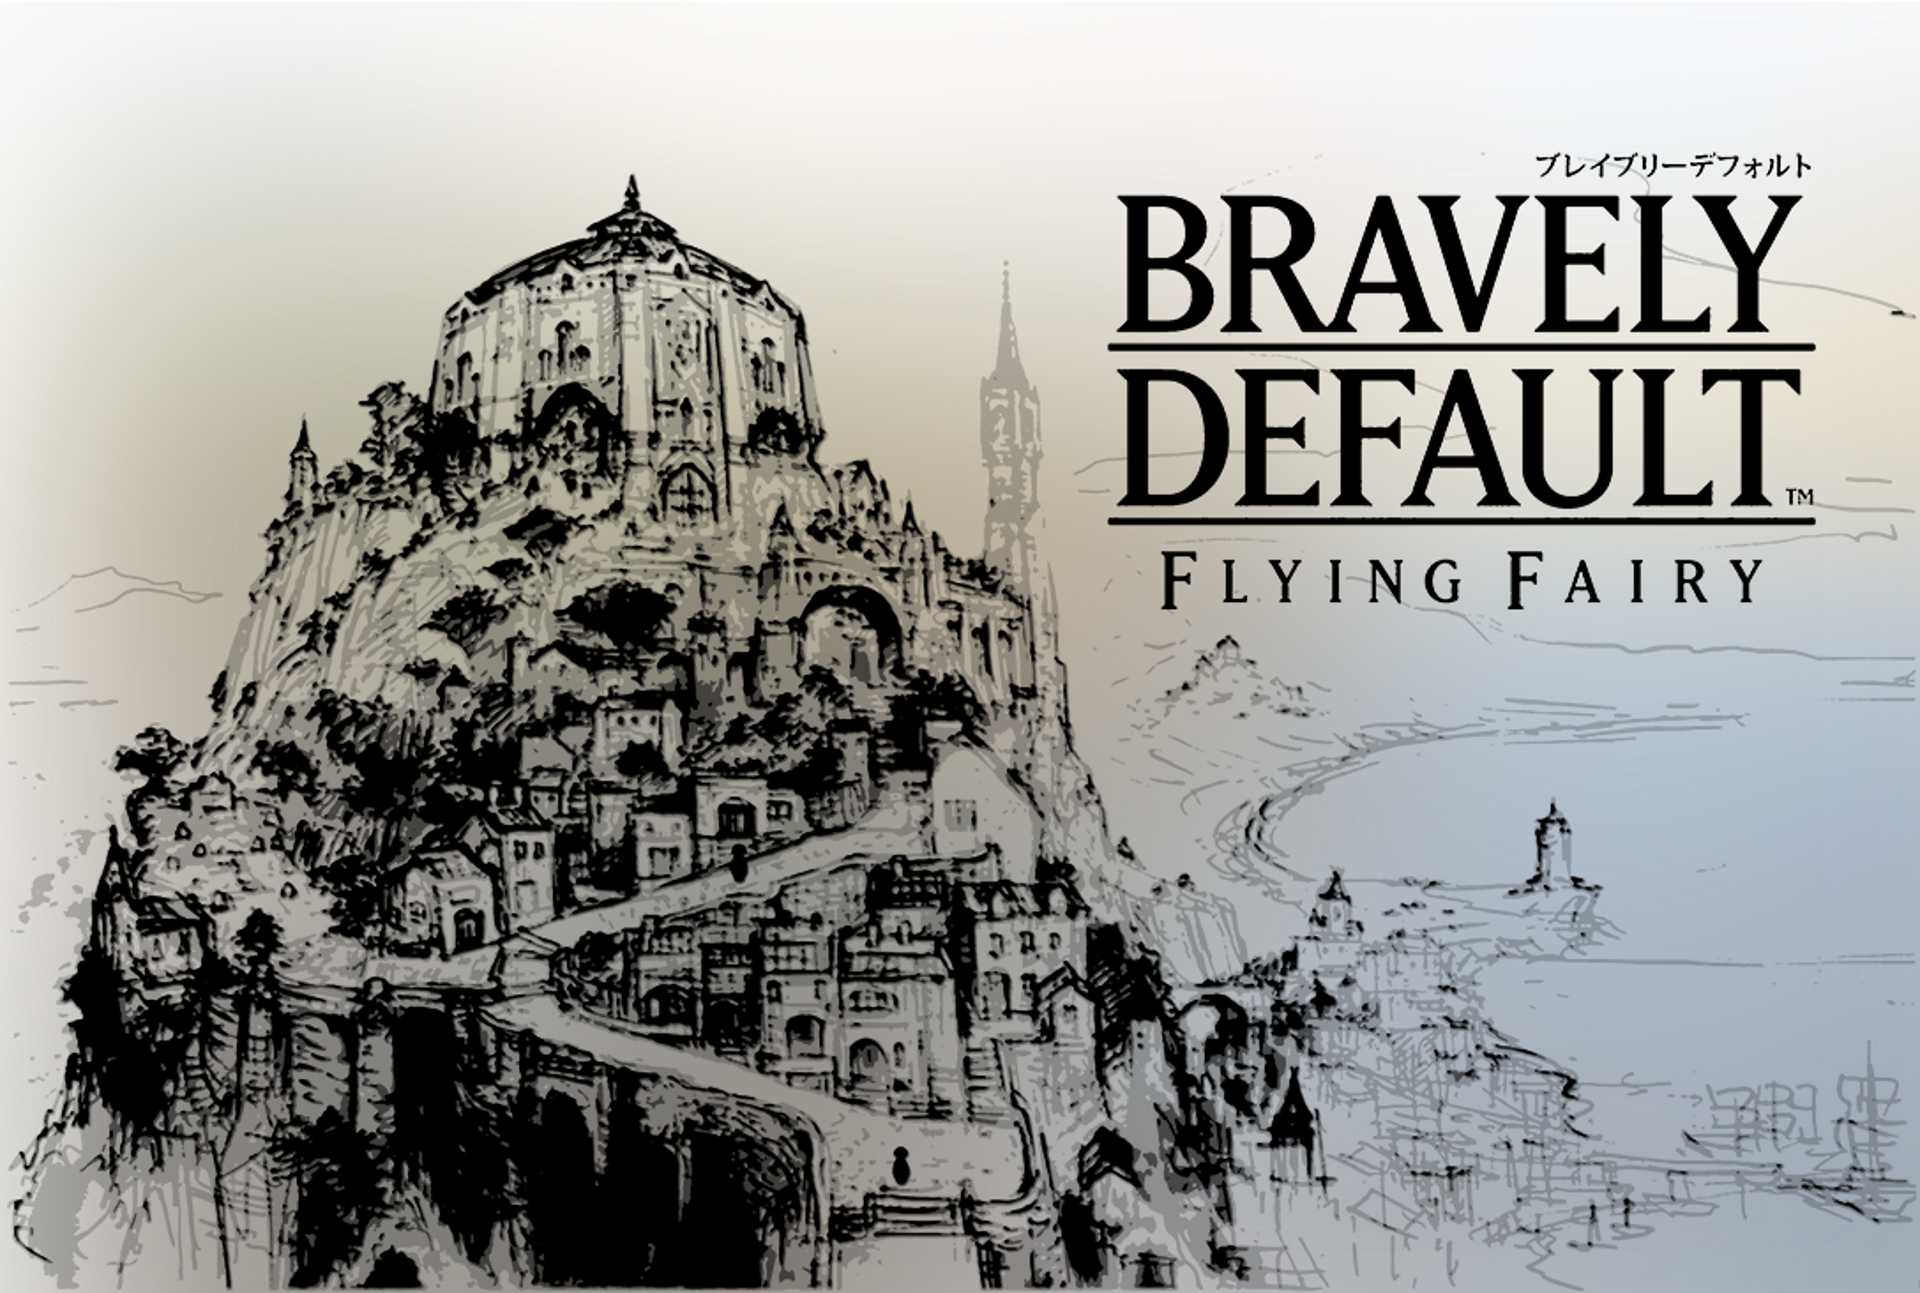 Bravely Default: Will The Name Change?